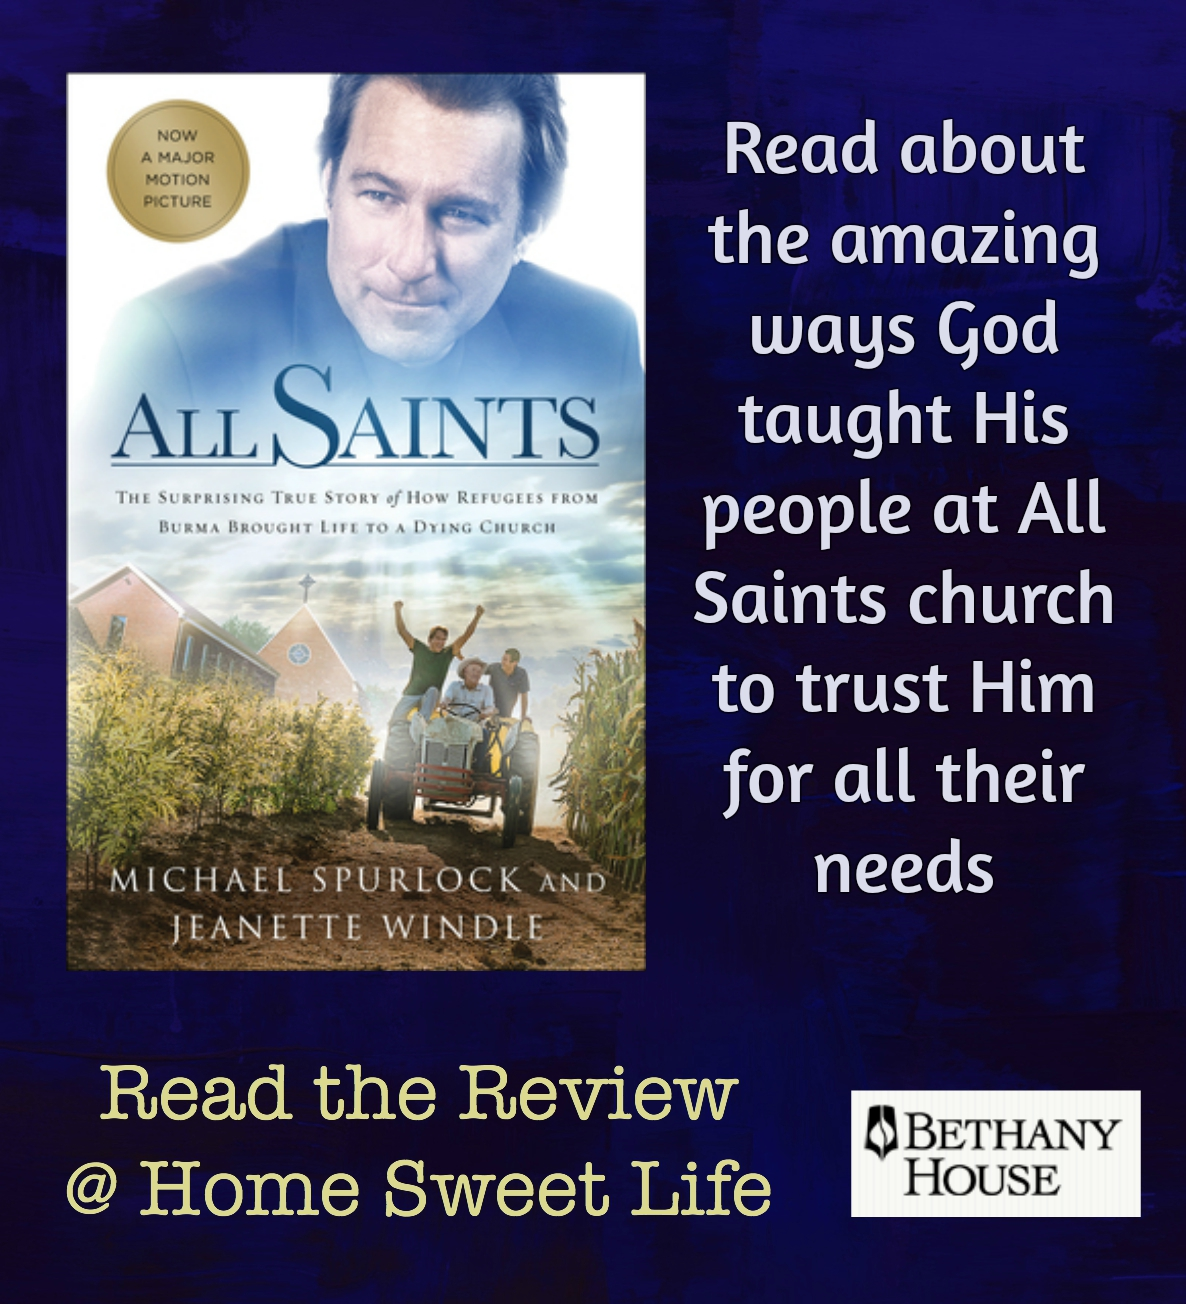 all saints the surprising true story of how refugees from burma brought life to a dying church